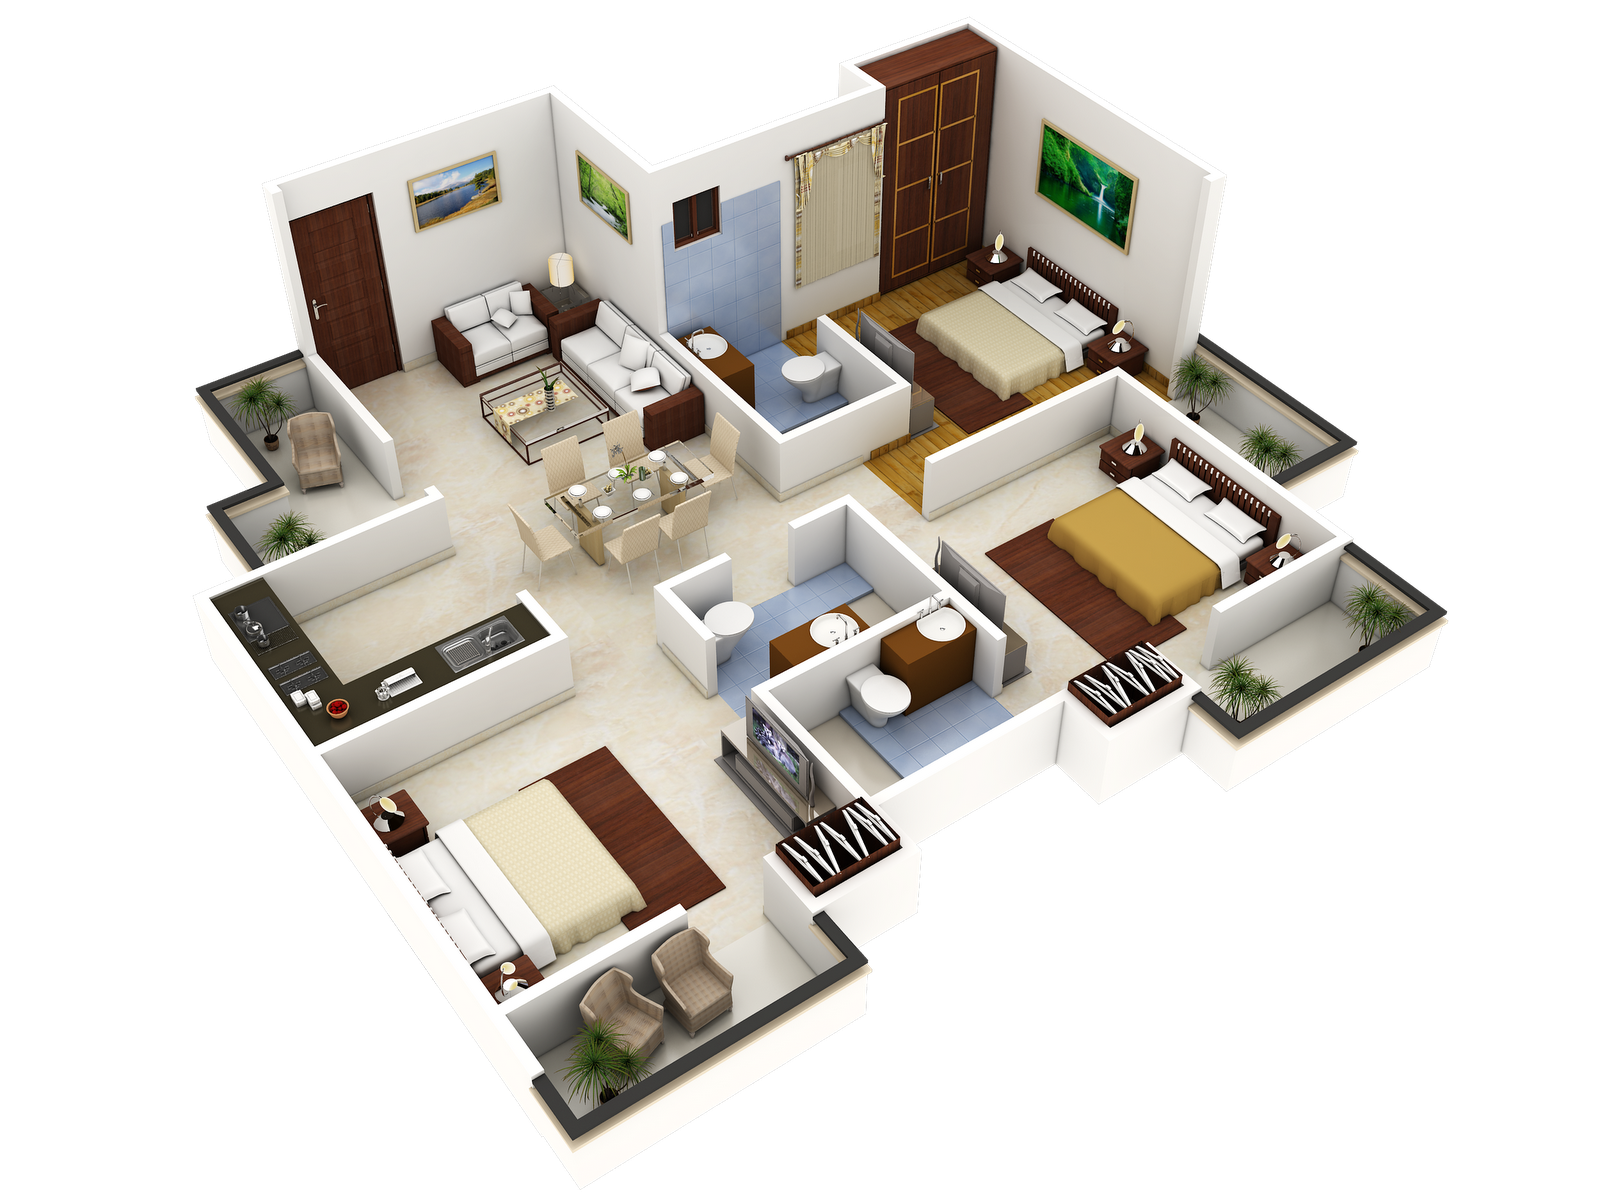 3d 3 bedroom house plans - 3 Bedroom House Designs 3d Buscar Con Google